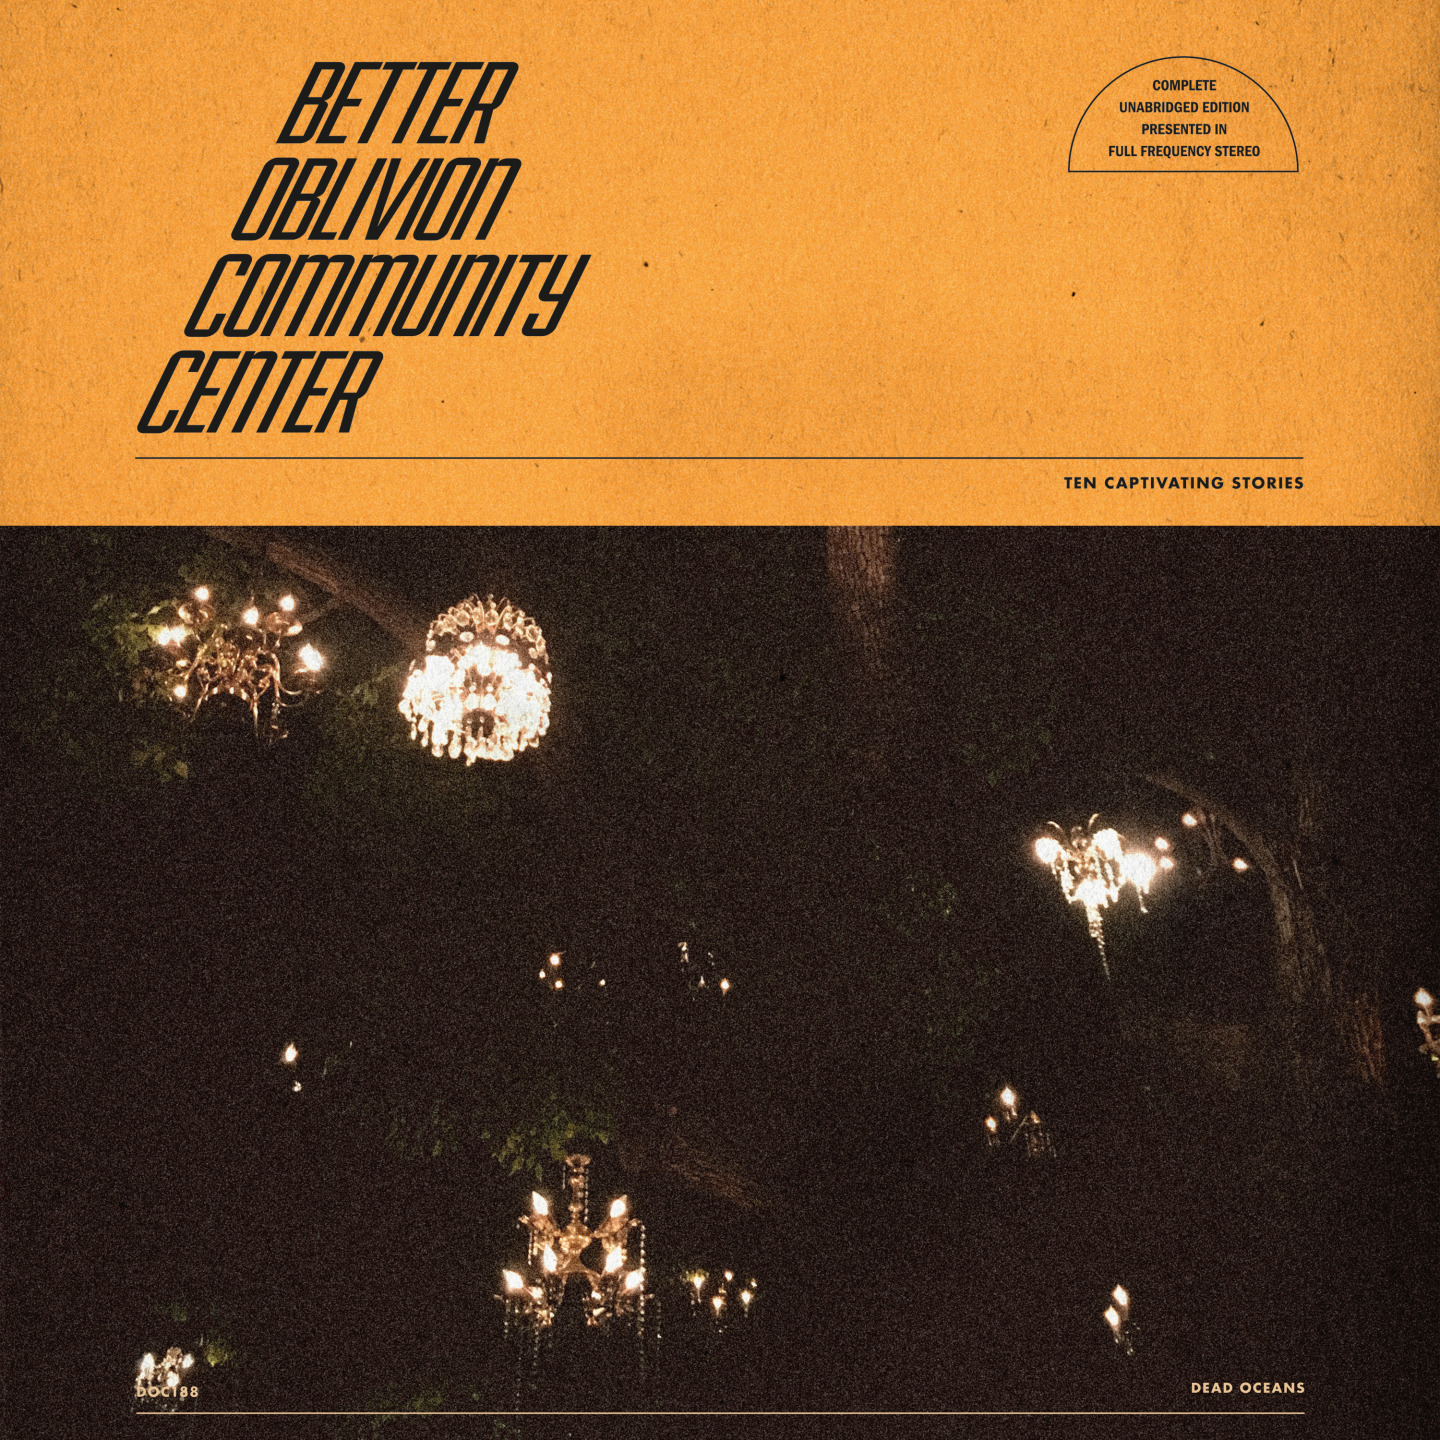 Grounded in reality with Better Oblivion Community Center